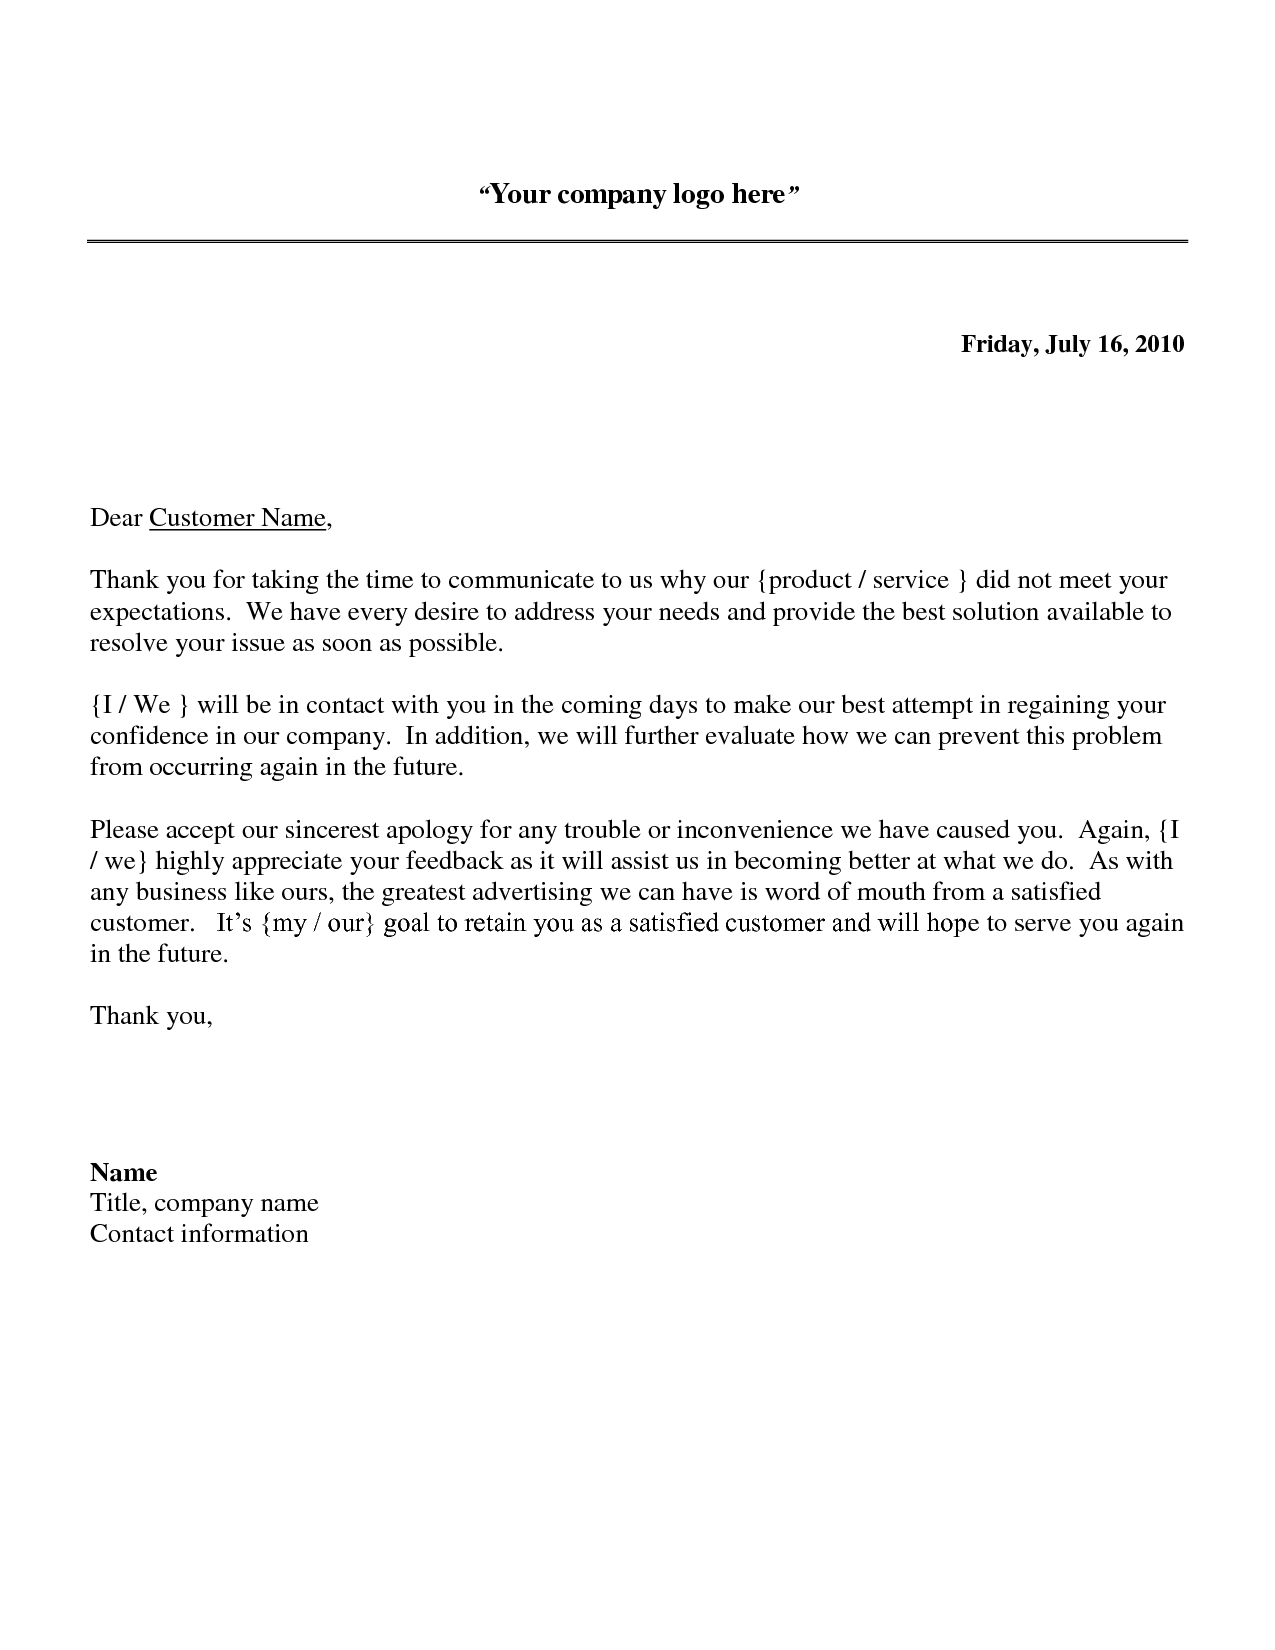 Business apology letter sample download as doc images frompoletter business apology letter sample download as doc images frompoletter of apology business letter sample spiritdancerdesigns Images